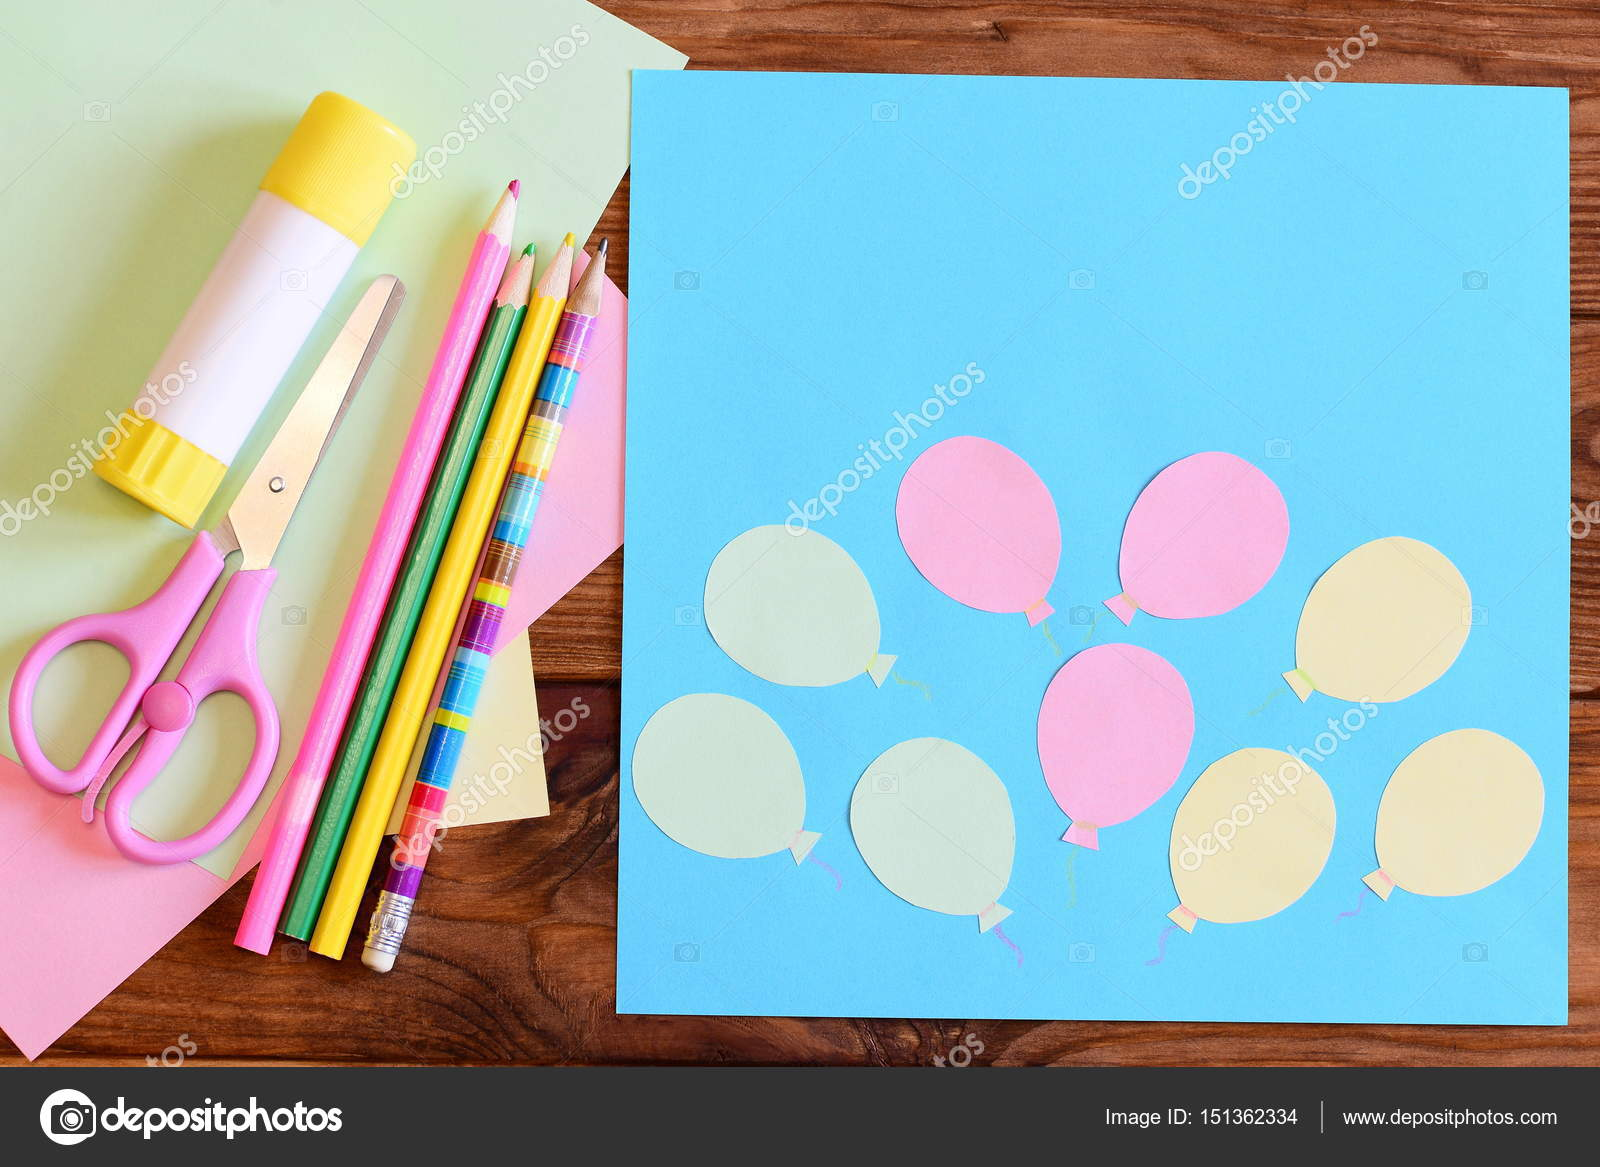 Creating A Paper Card With Balloons Step Tutorial For Children Air Day Or